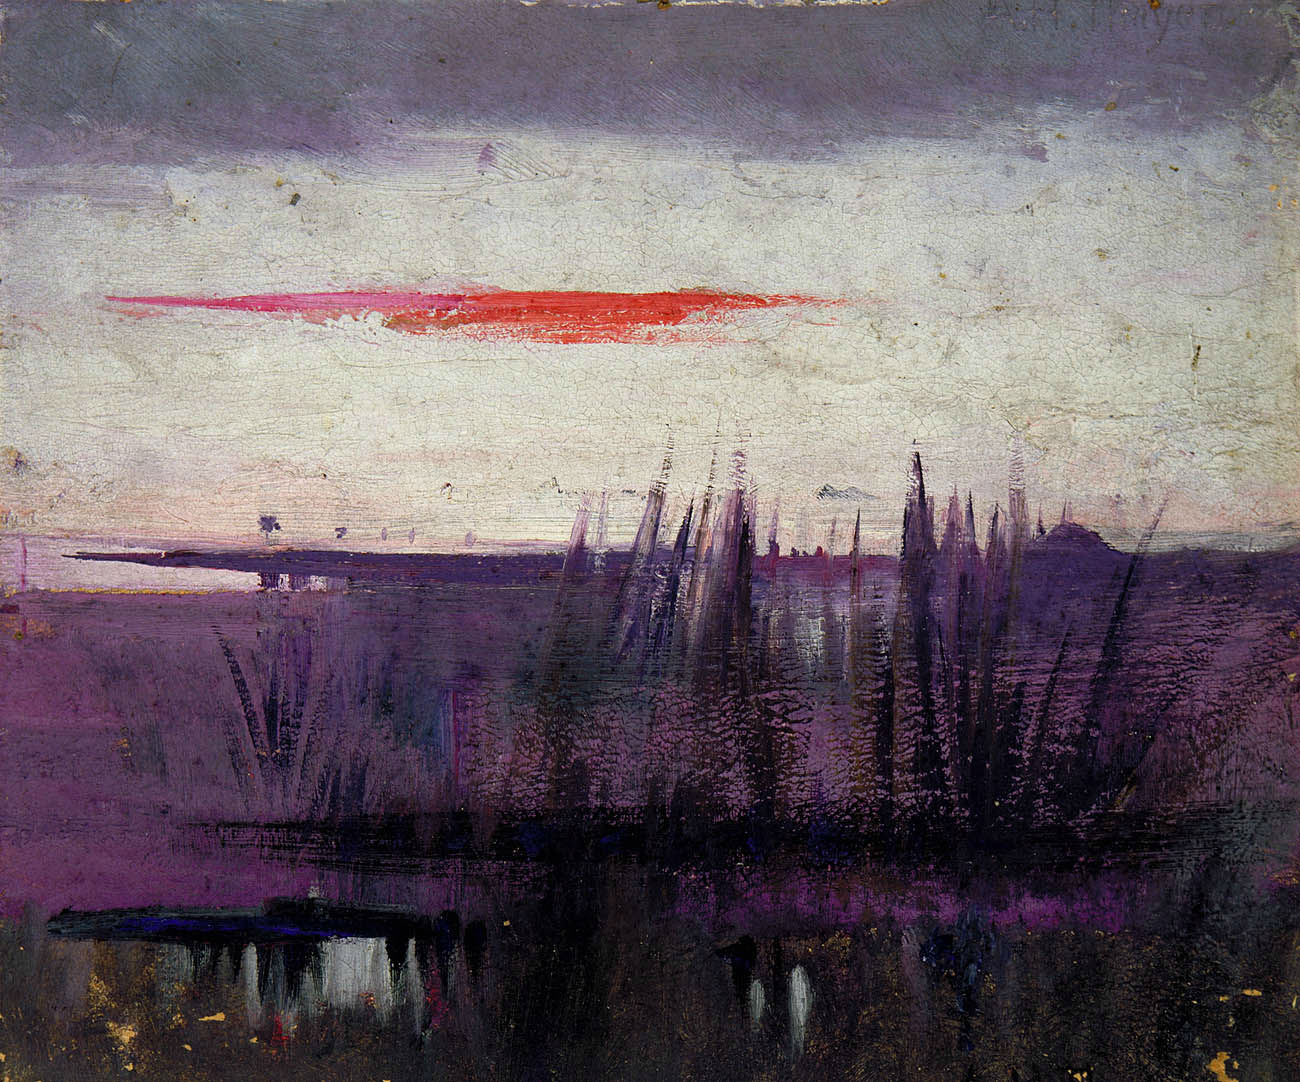 Abbott Handerson Thayer - The Sky Simulated by White Flamingoes